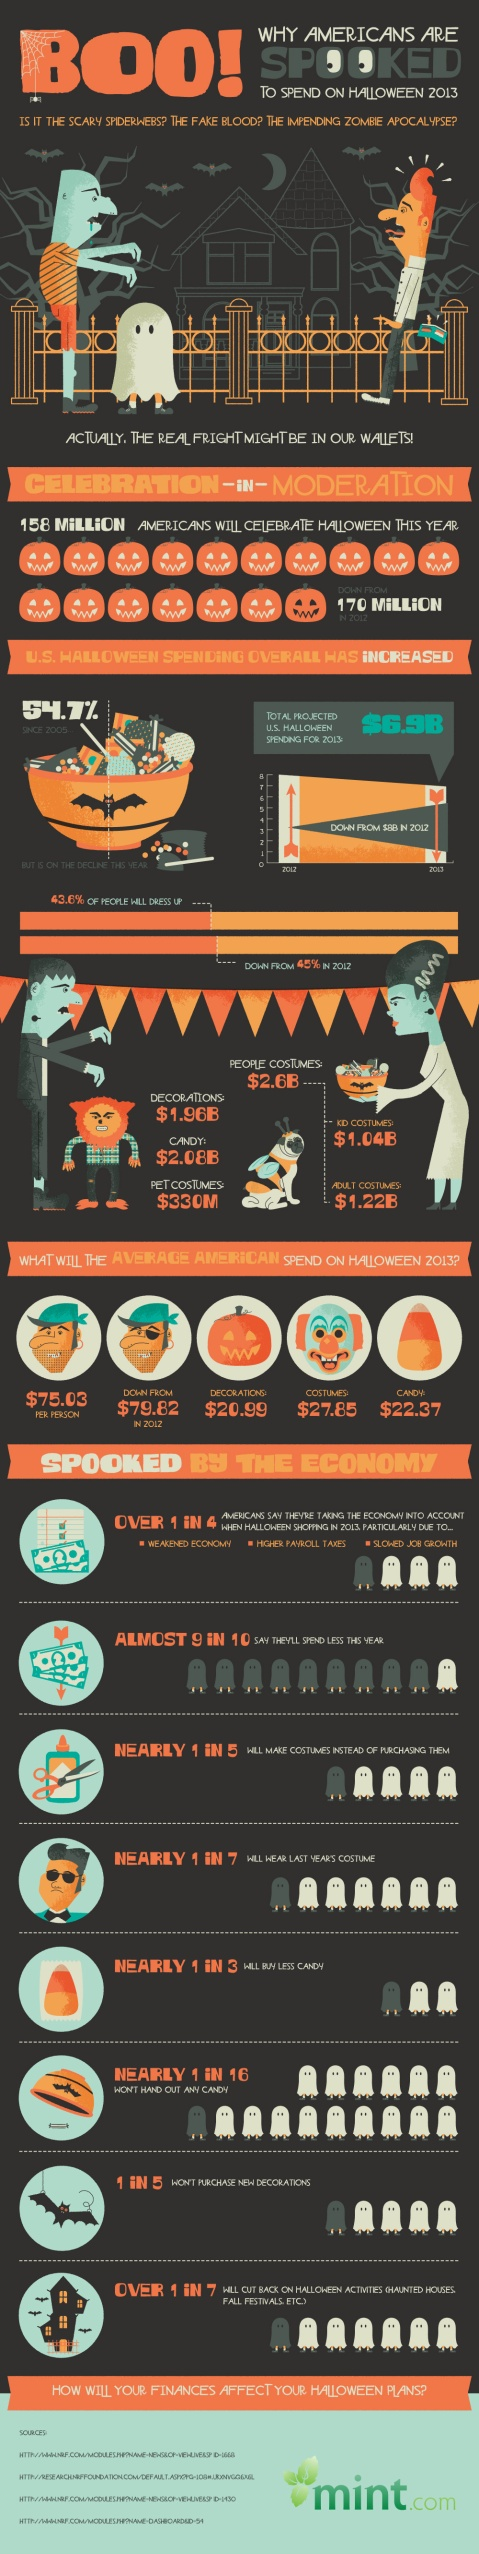 BOO! Why Americans are Spooked to Spend on Halloween 2013